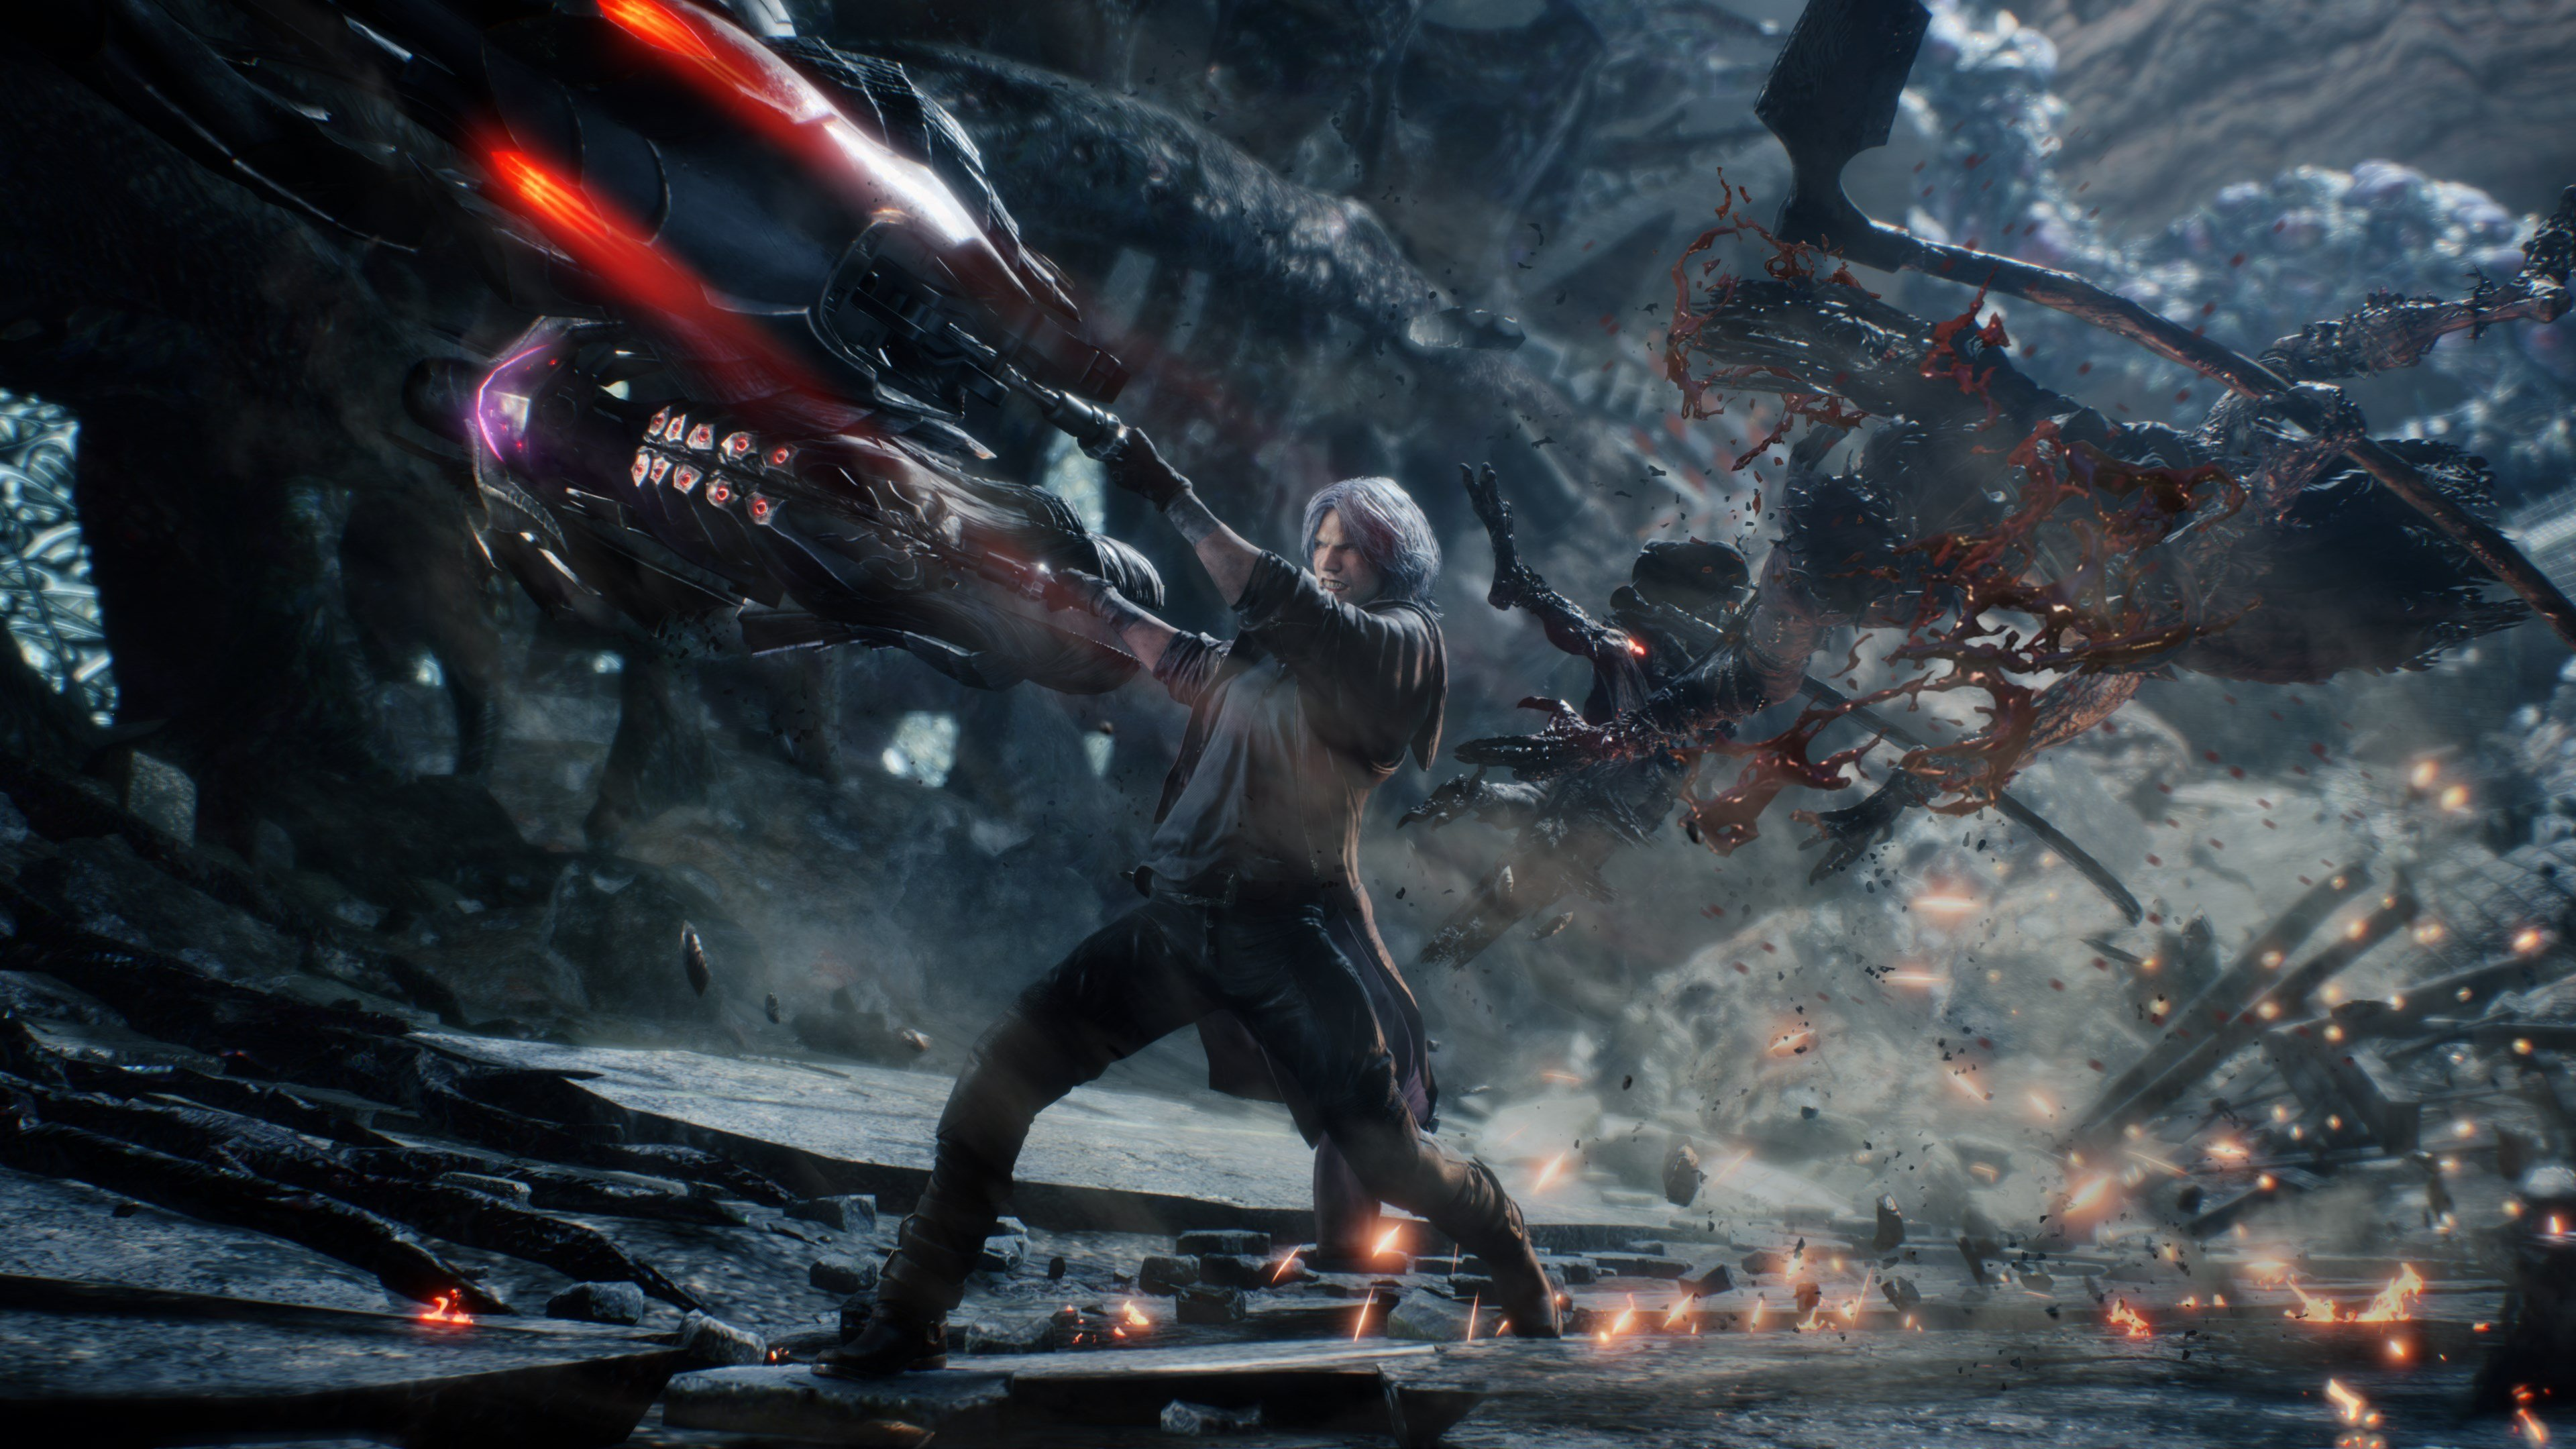 While it'll take you around 15 hours to beat Devil May Cry 5 the first time, playing the campaign again on the Dante Must Die difficulty setting can add another 15 hours of gameplay to your overall completion time.